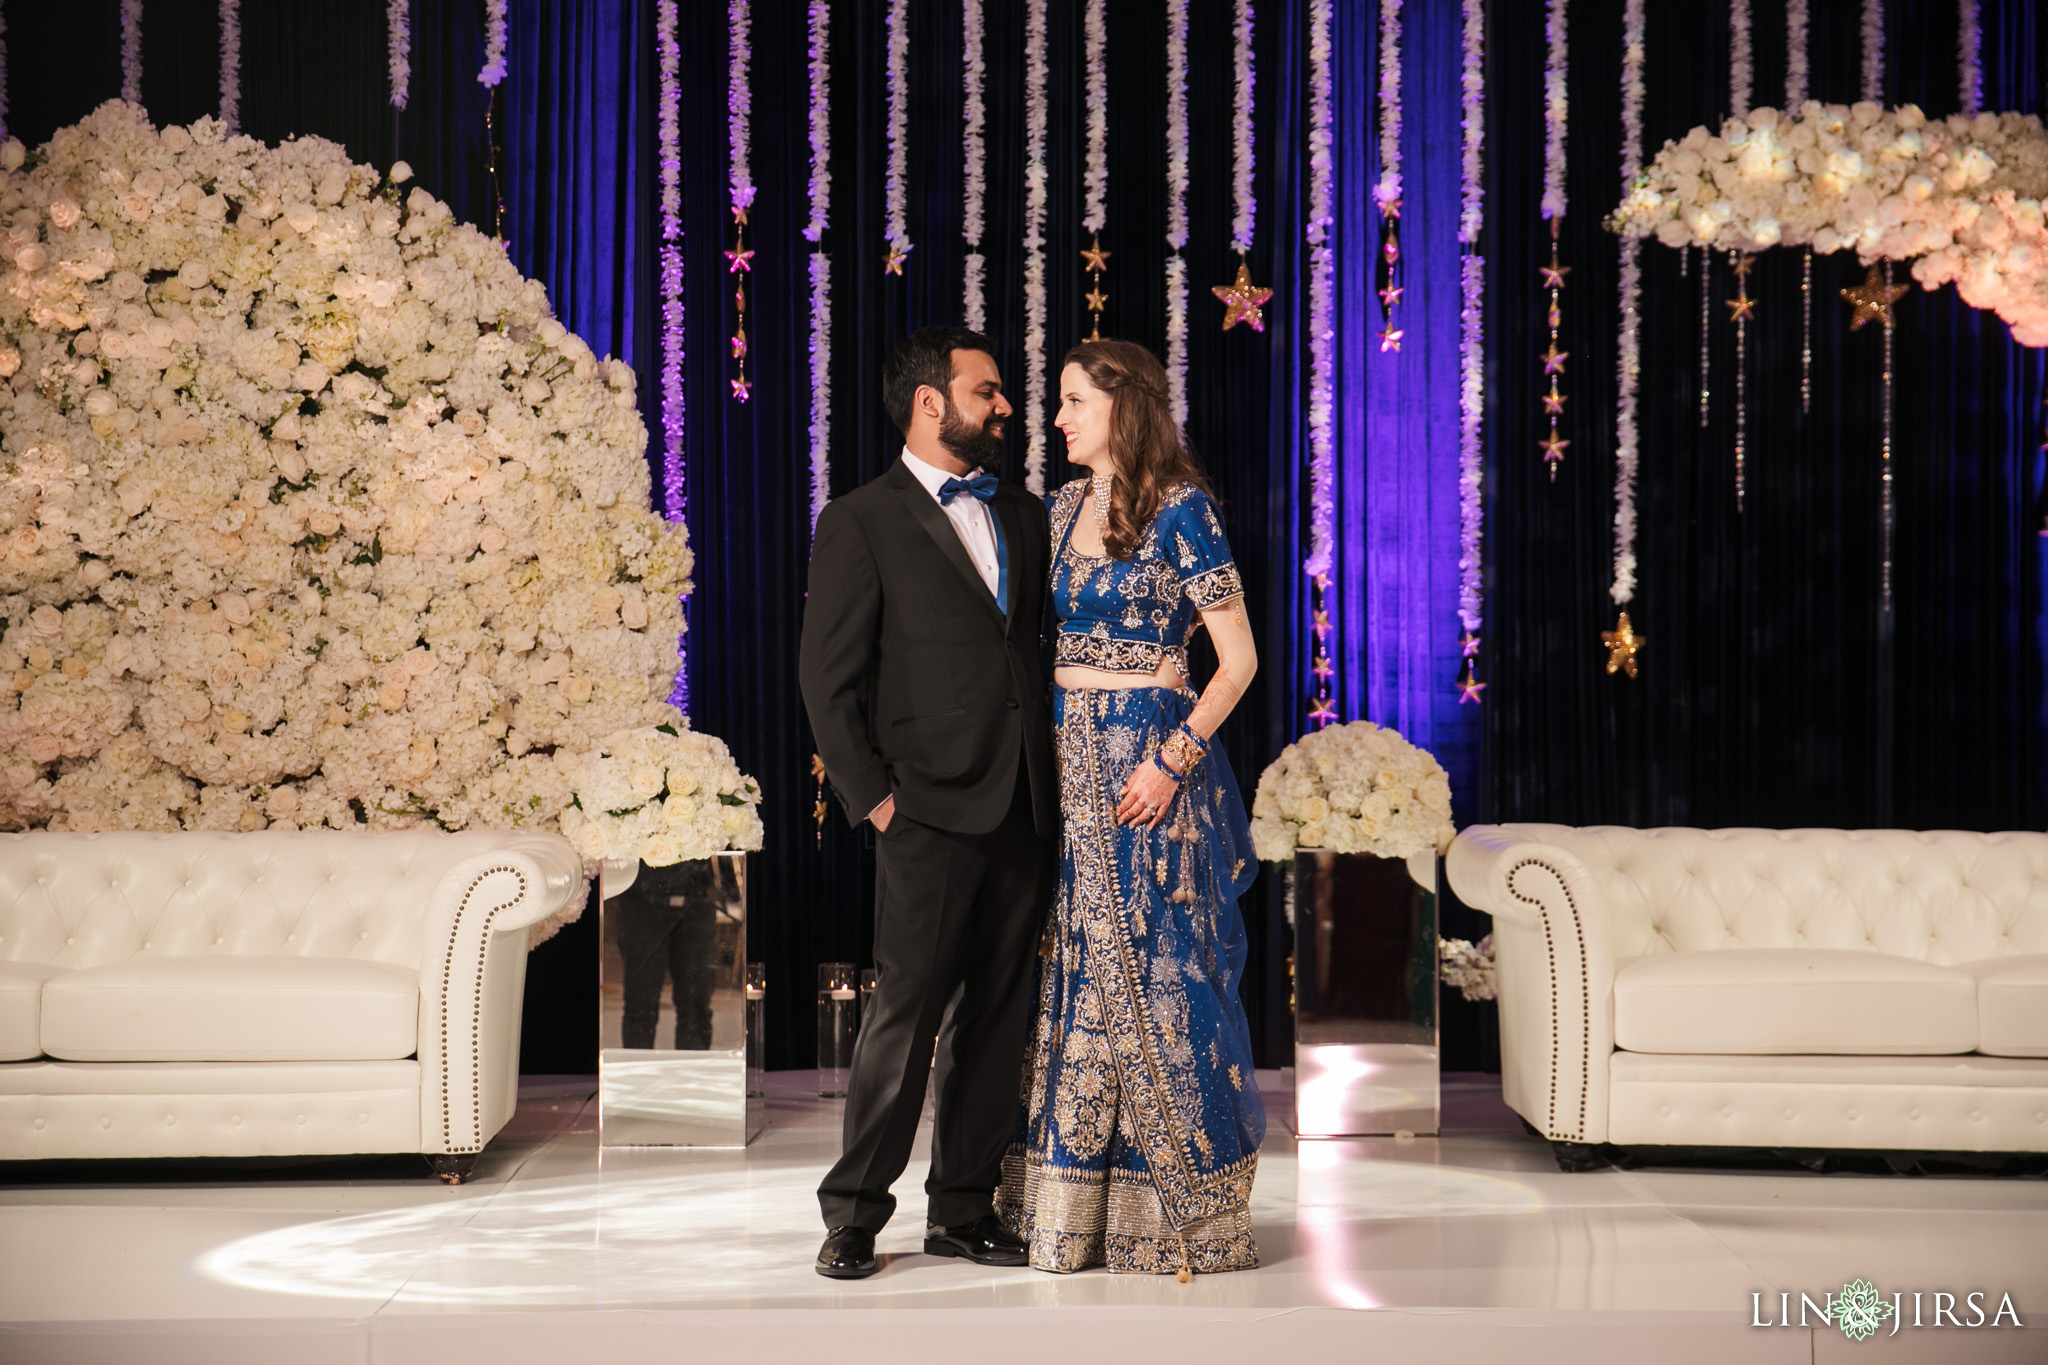 11 Hotel Irvine Joint Indian Reception Wedding Photography